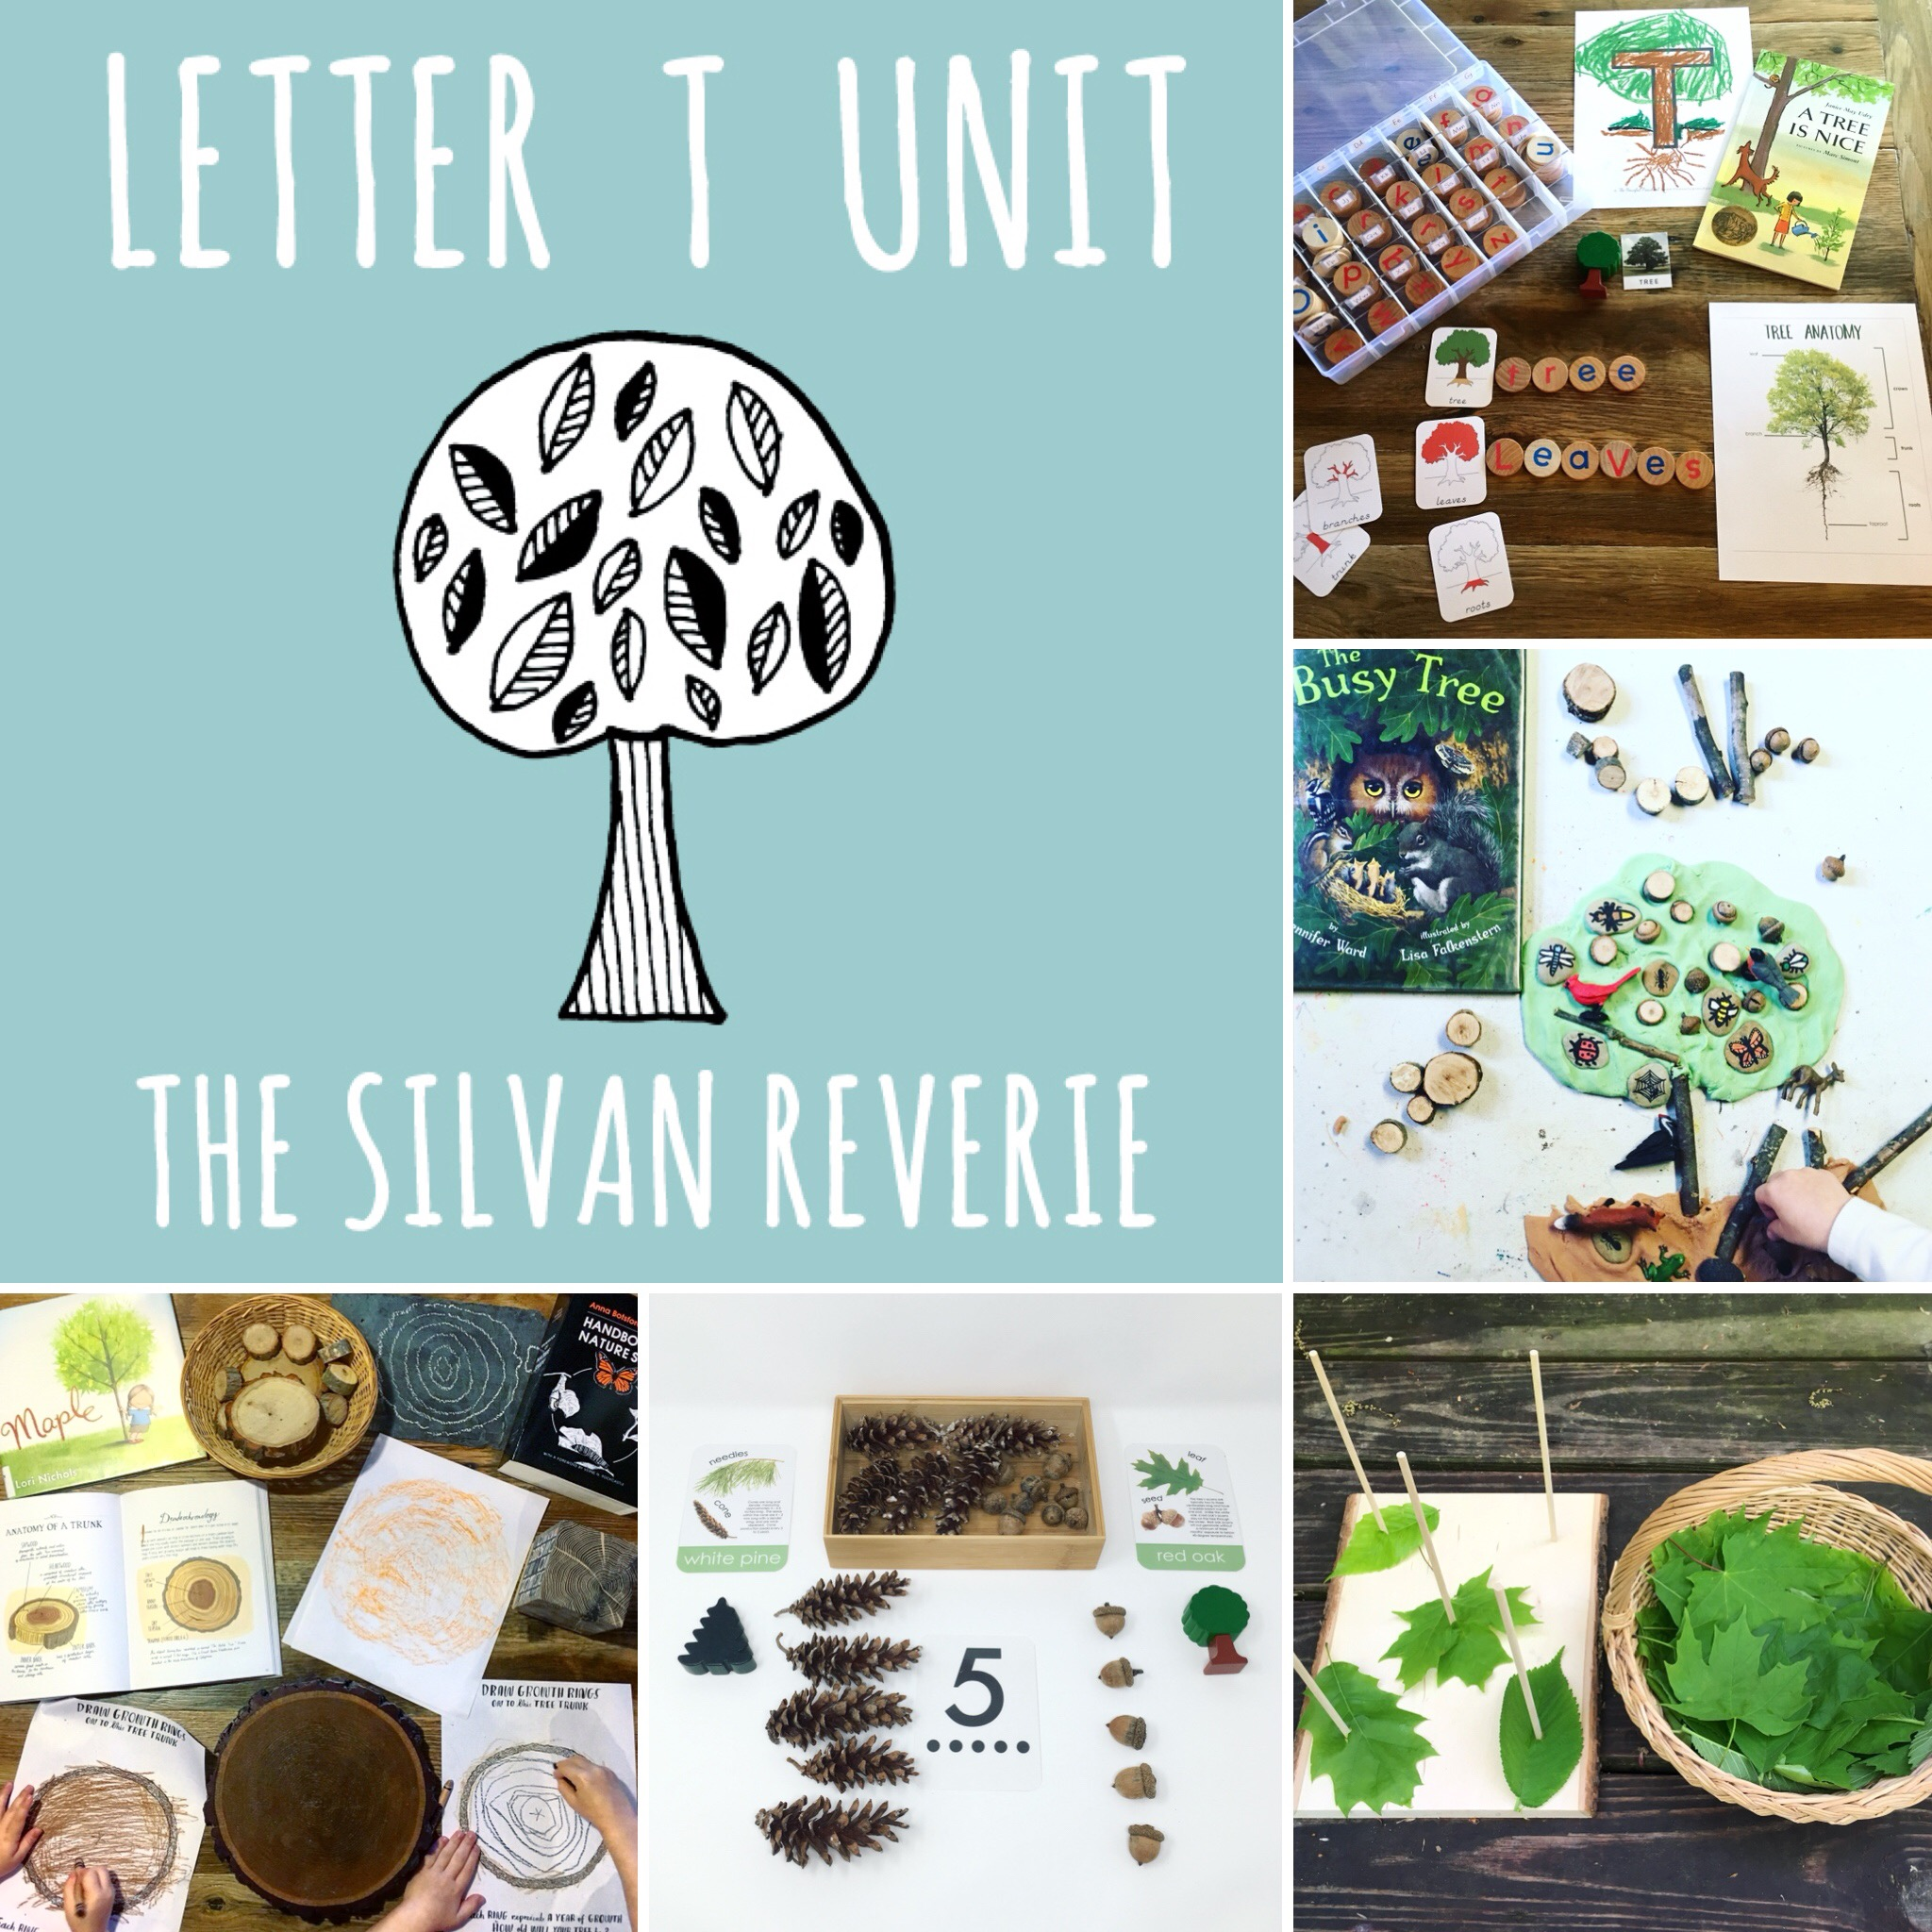 Bible Lessons by Letter Unit – THE SILVAN REVERIE